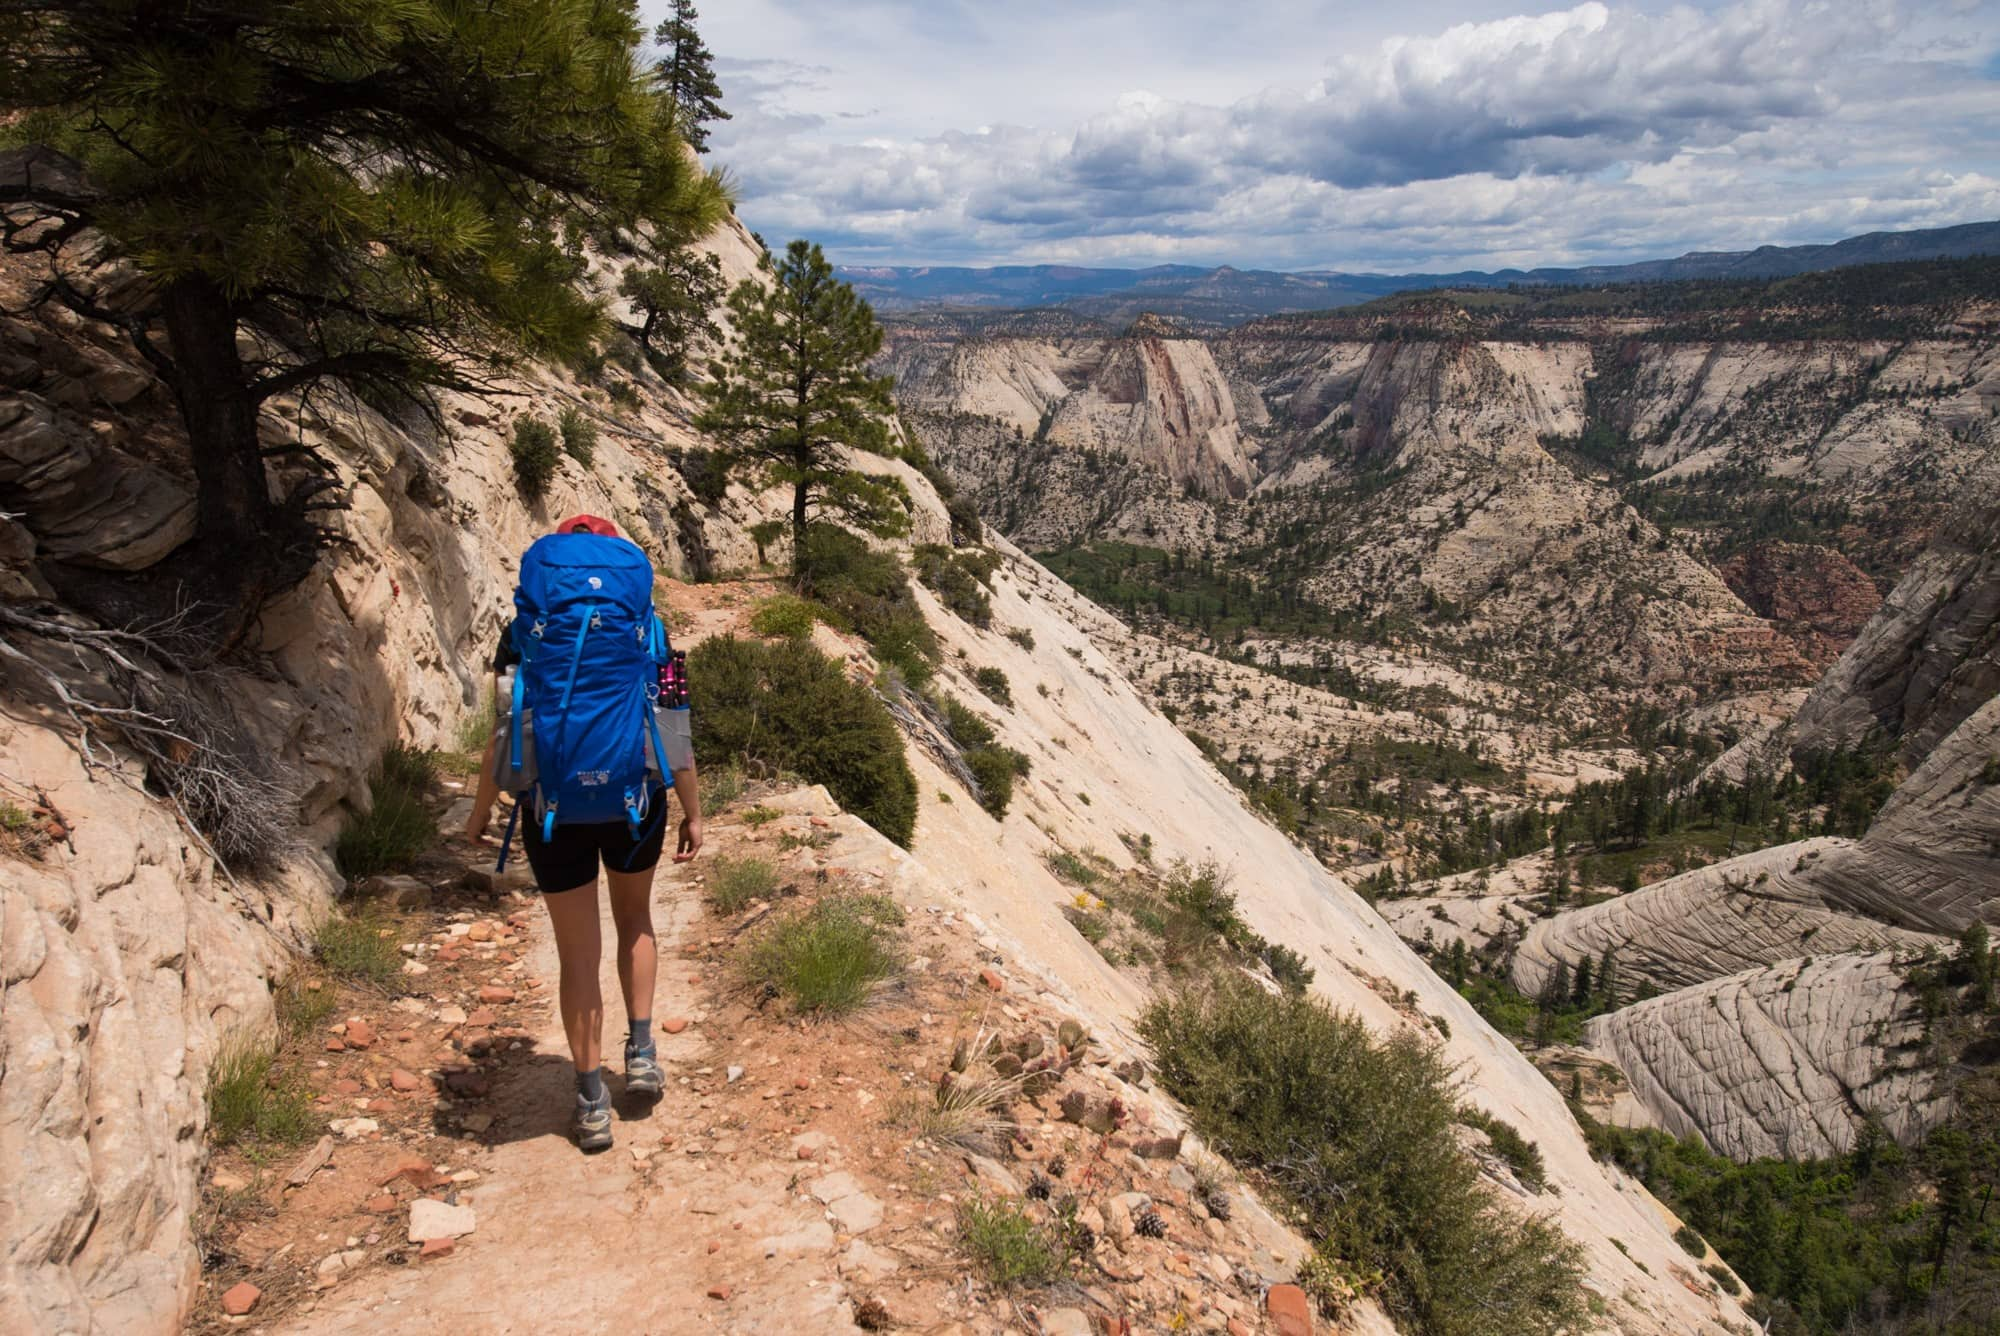 West Rim Trail Backpacking Guide in Zion National Park